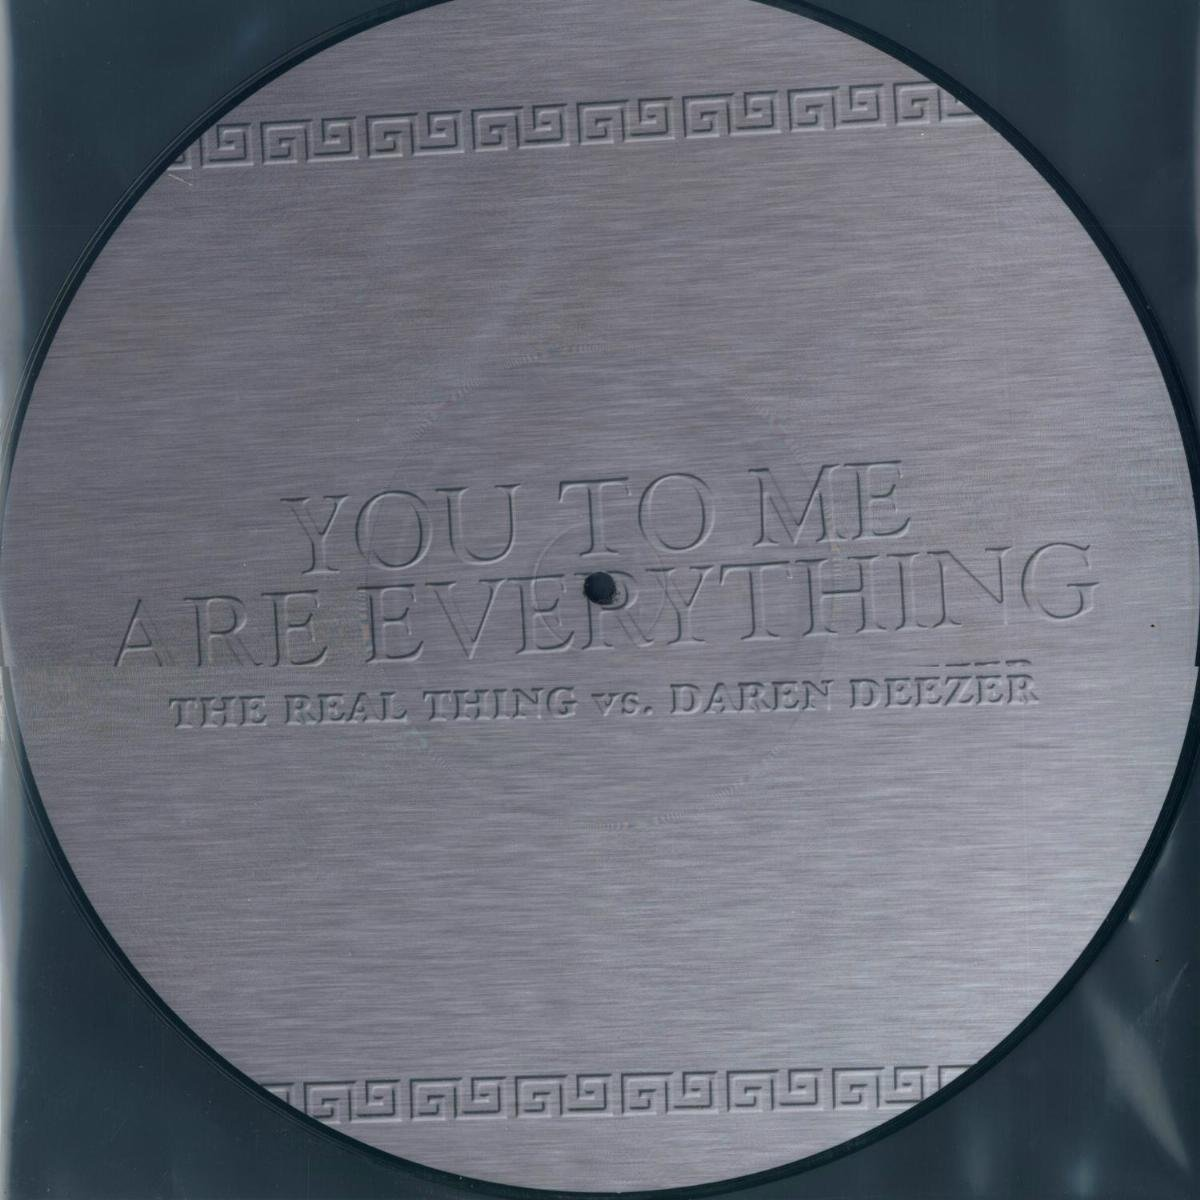 The Real Thing Vs. Daren Deeze. You To Me Are Everything (LP, Picture Disc)